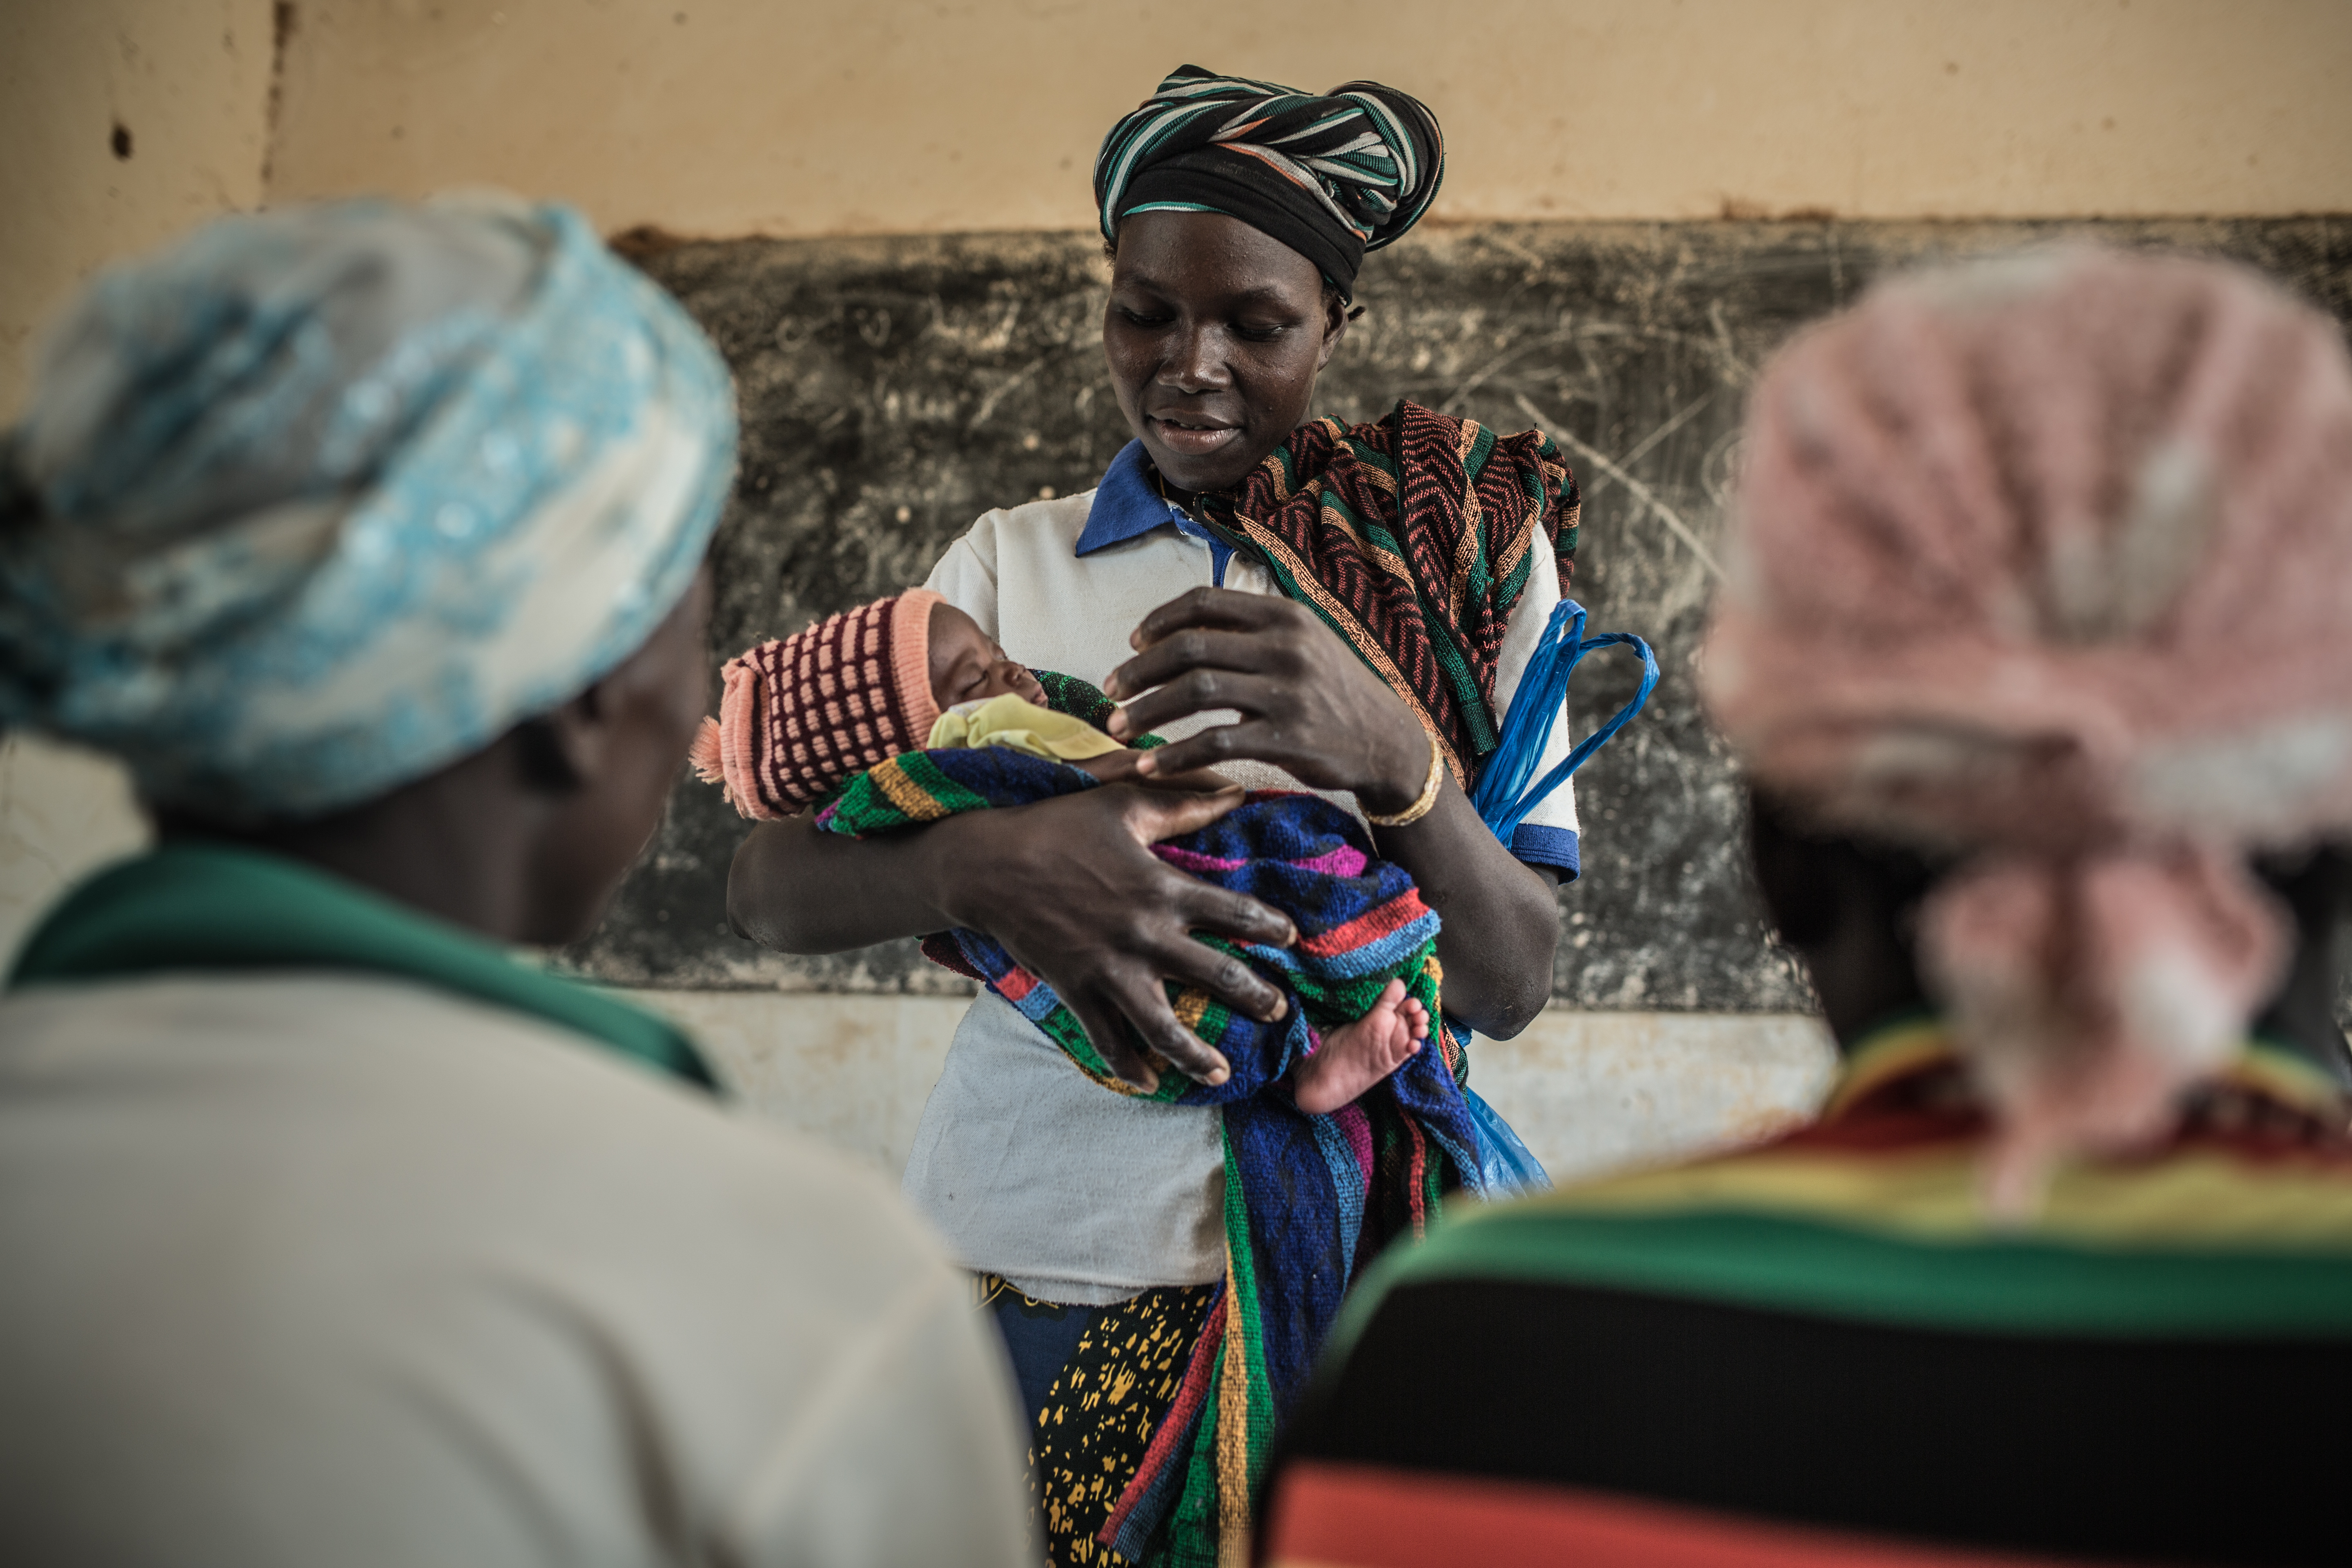 Fati Marmoussa (standing with her son) attends a workshop on preventing malnutrition organized by Oxfam and ATAD, together with other women.